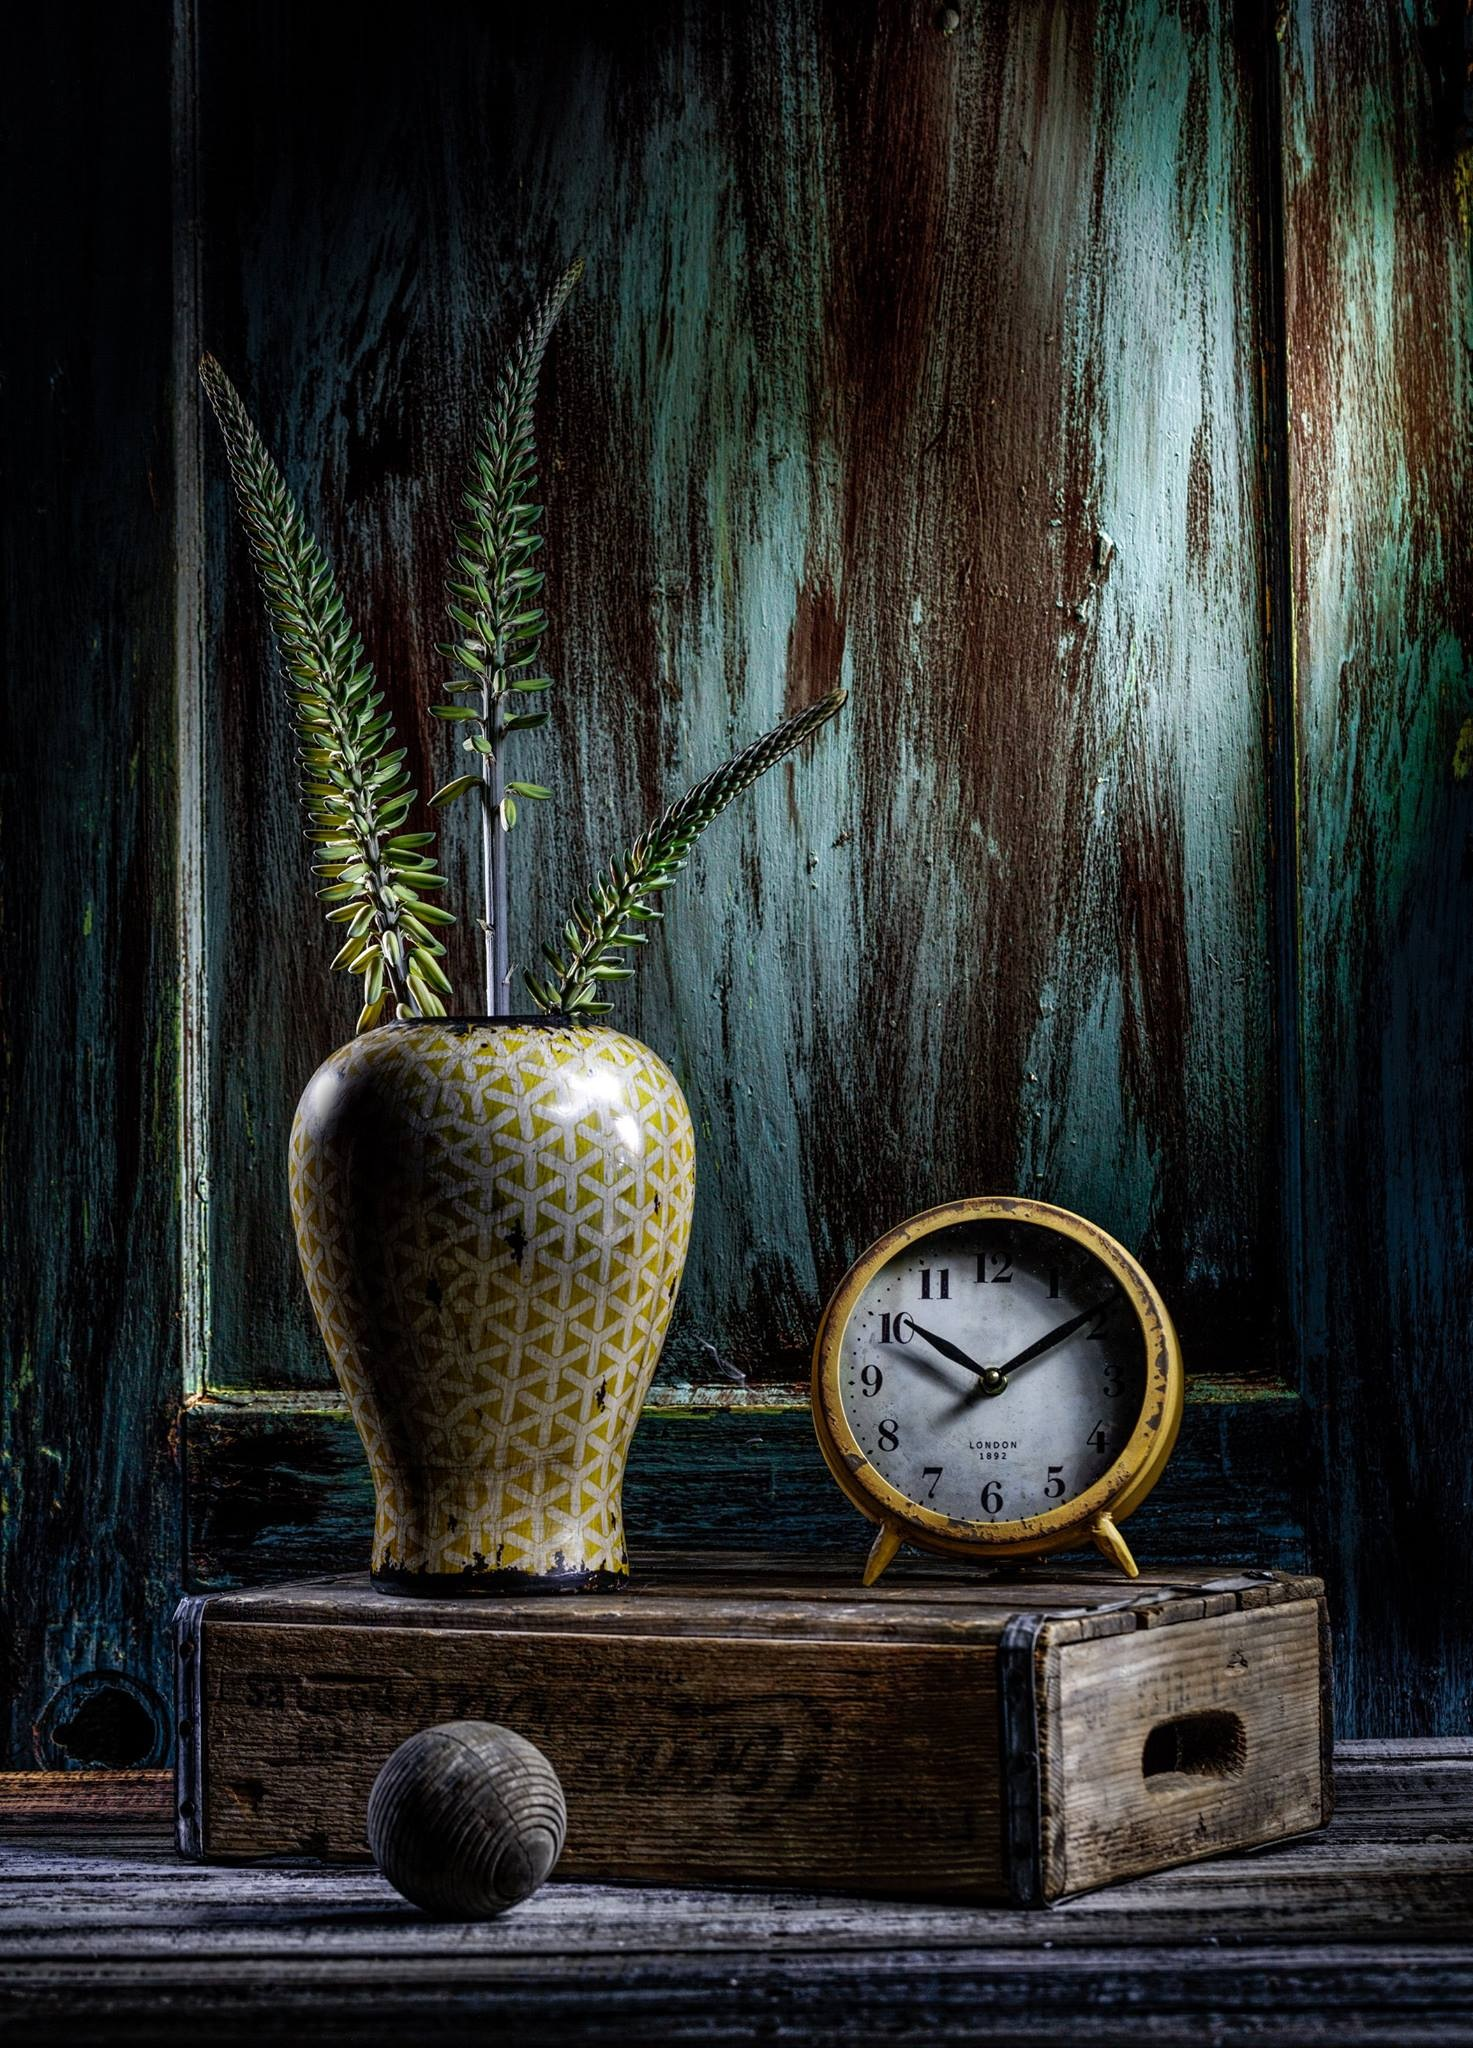 Time Gone By by RonaldSill